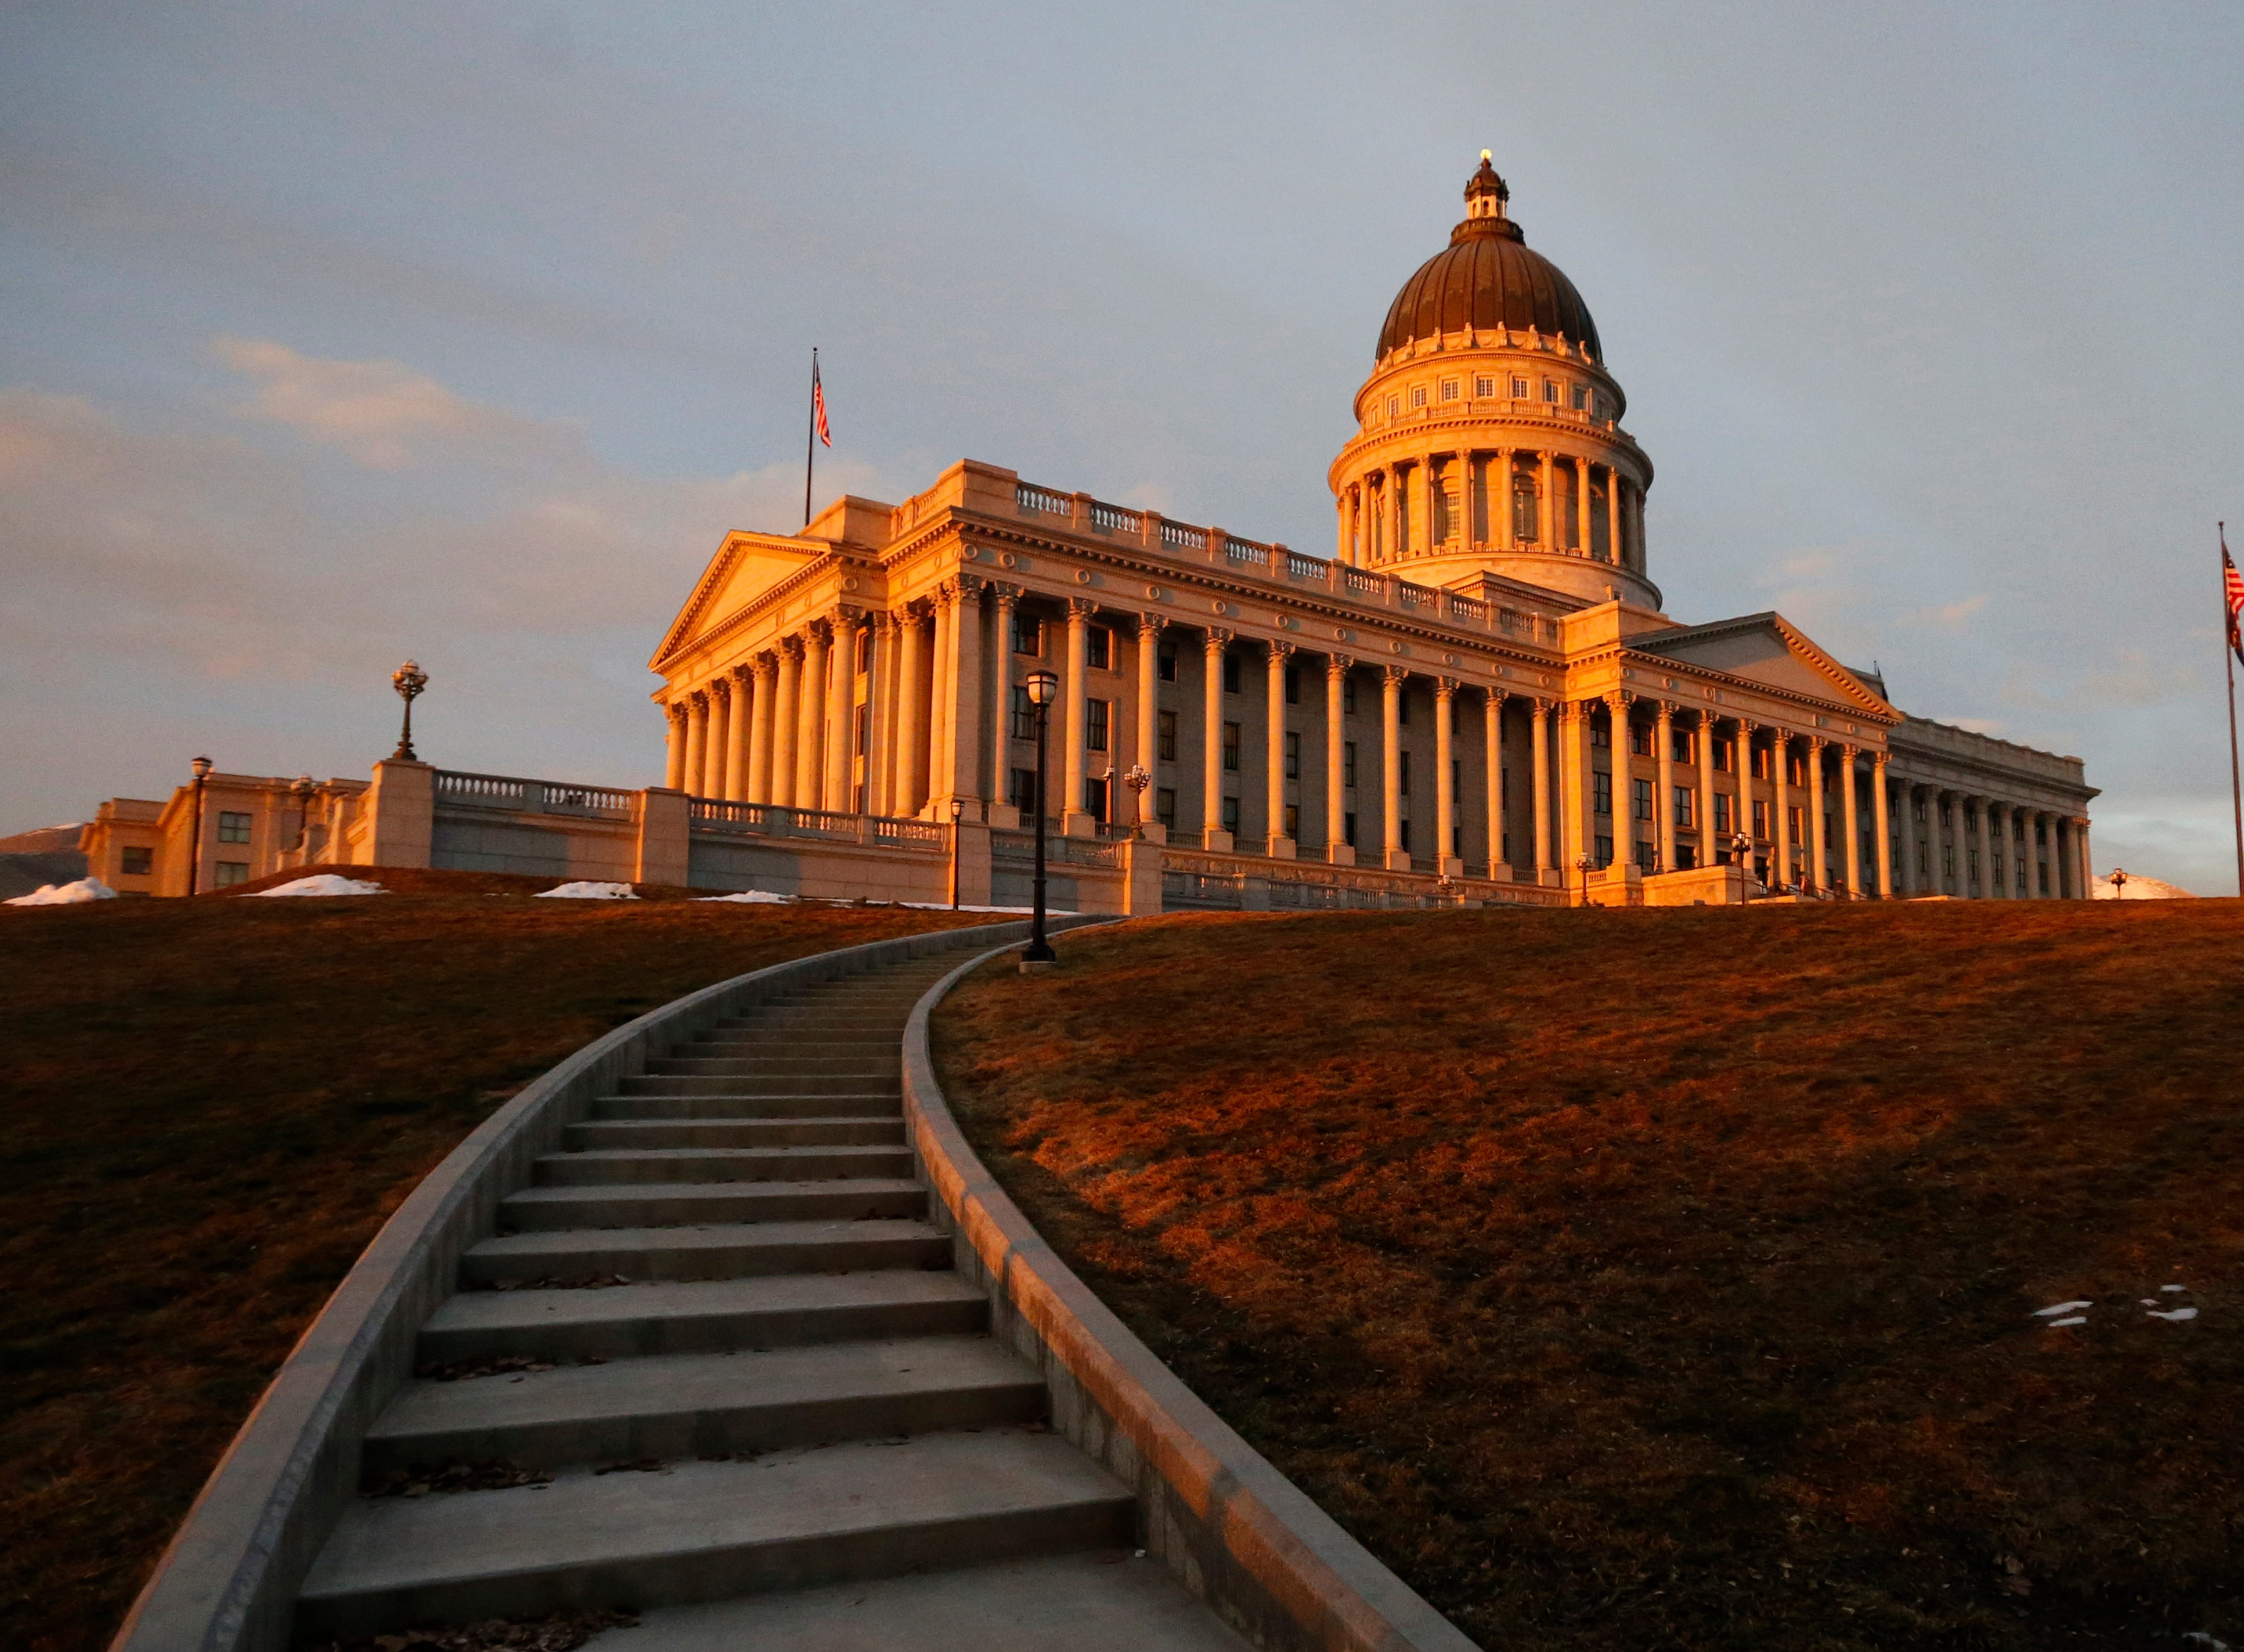 Proposal to strengthen Utah's stand-your-ground law approved